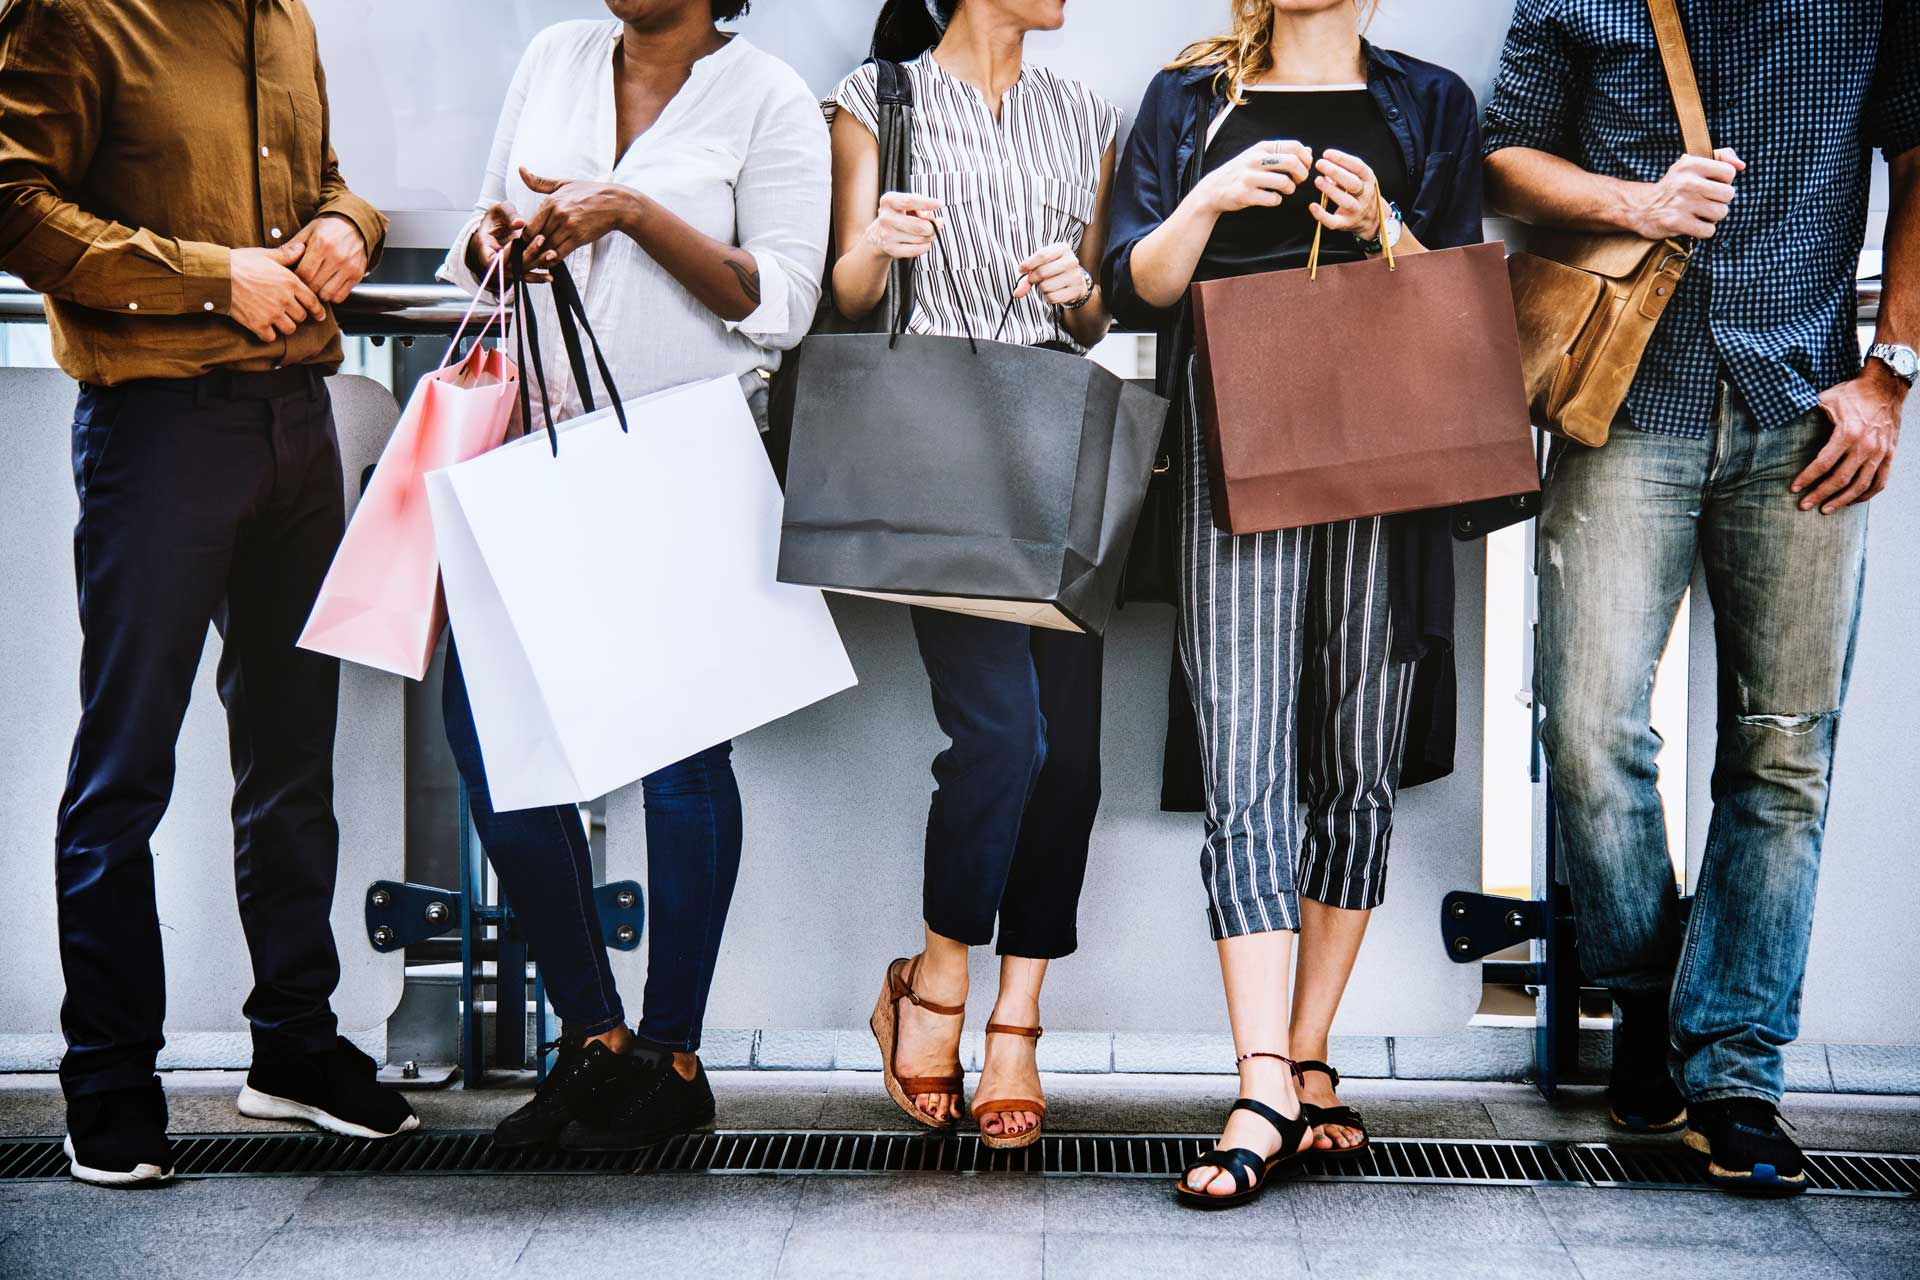 group of friends standing against wall holding shopping bags